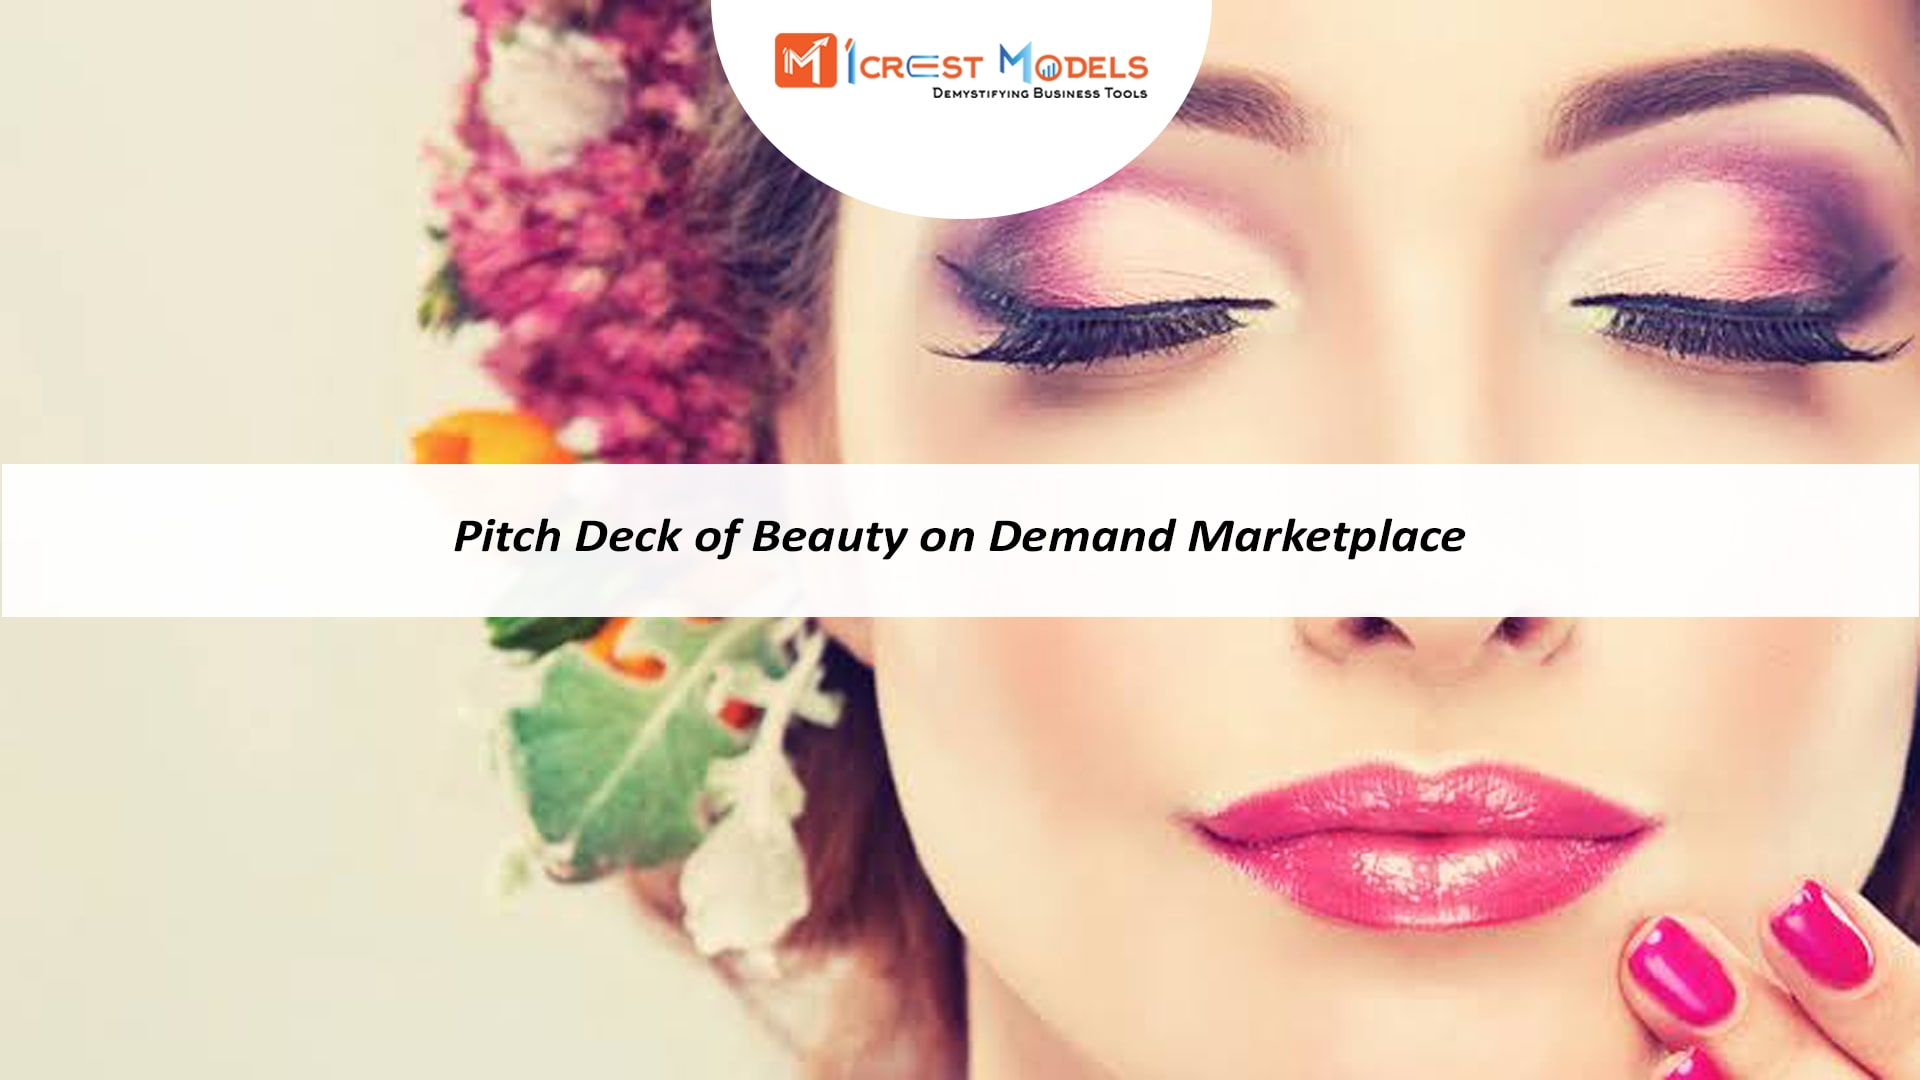 Pitch Deck of Salon and Beauty Marketplace Business